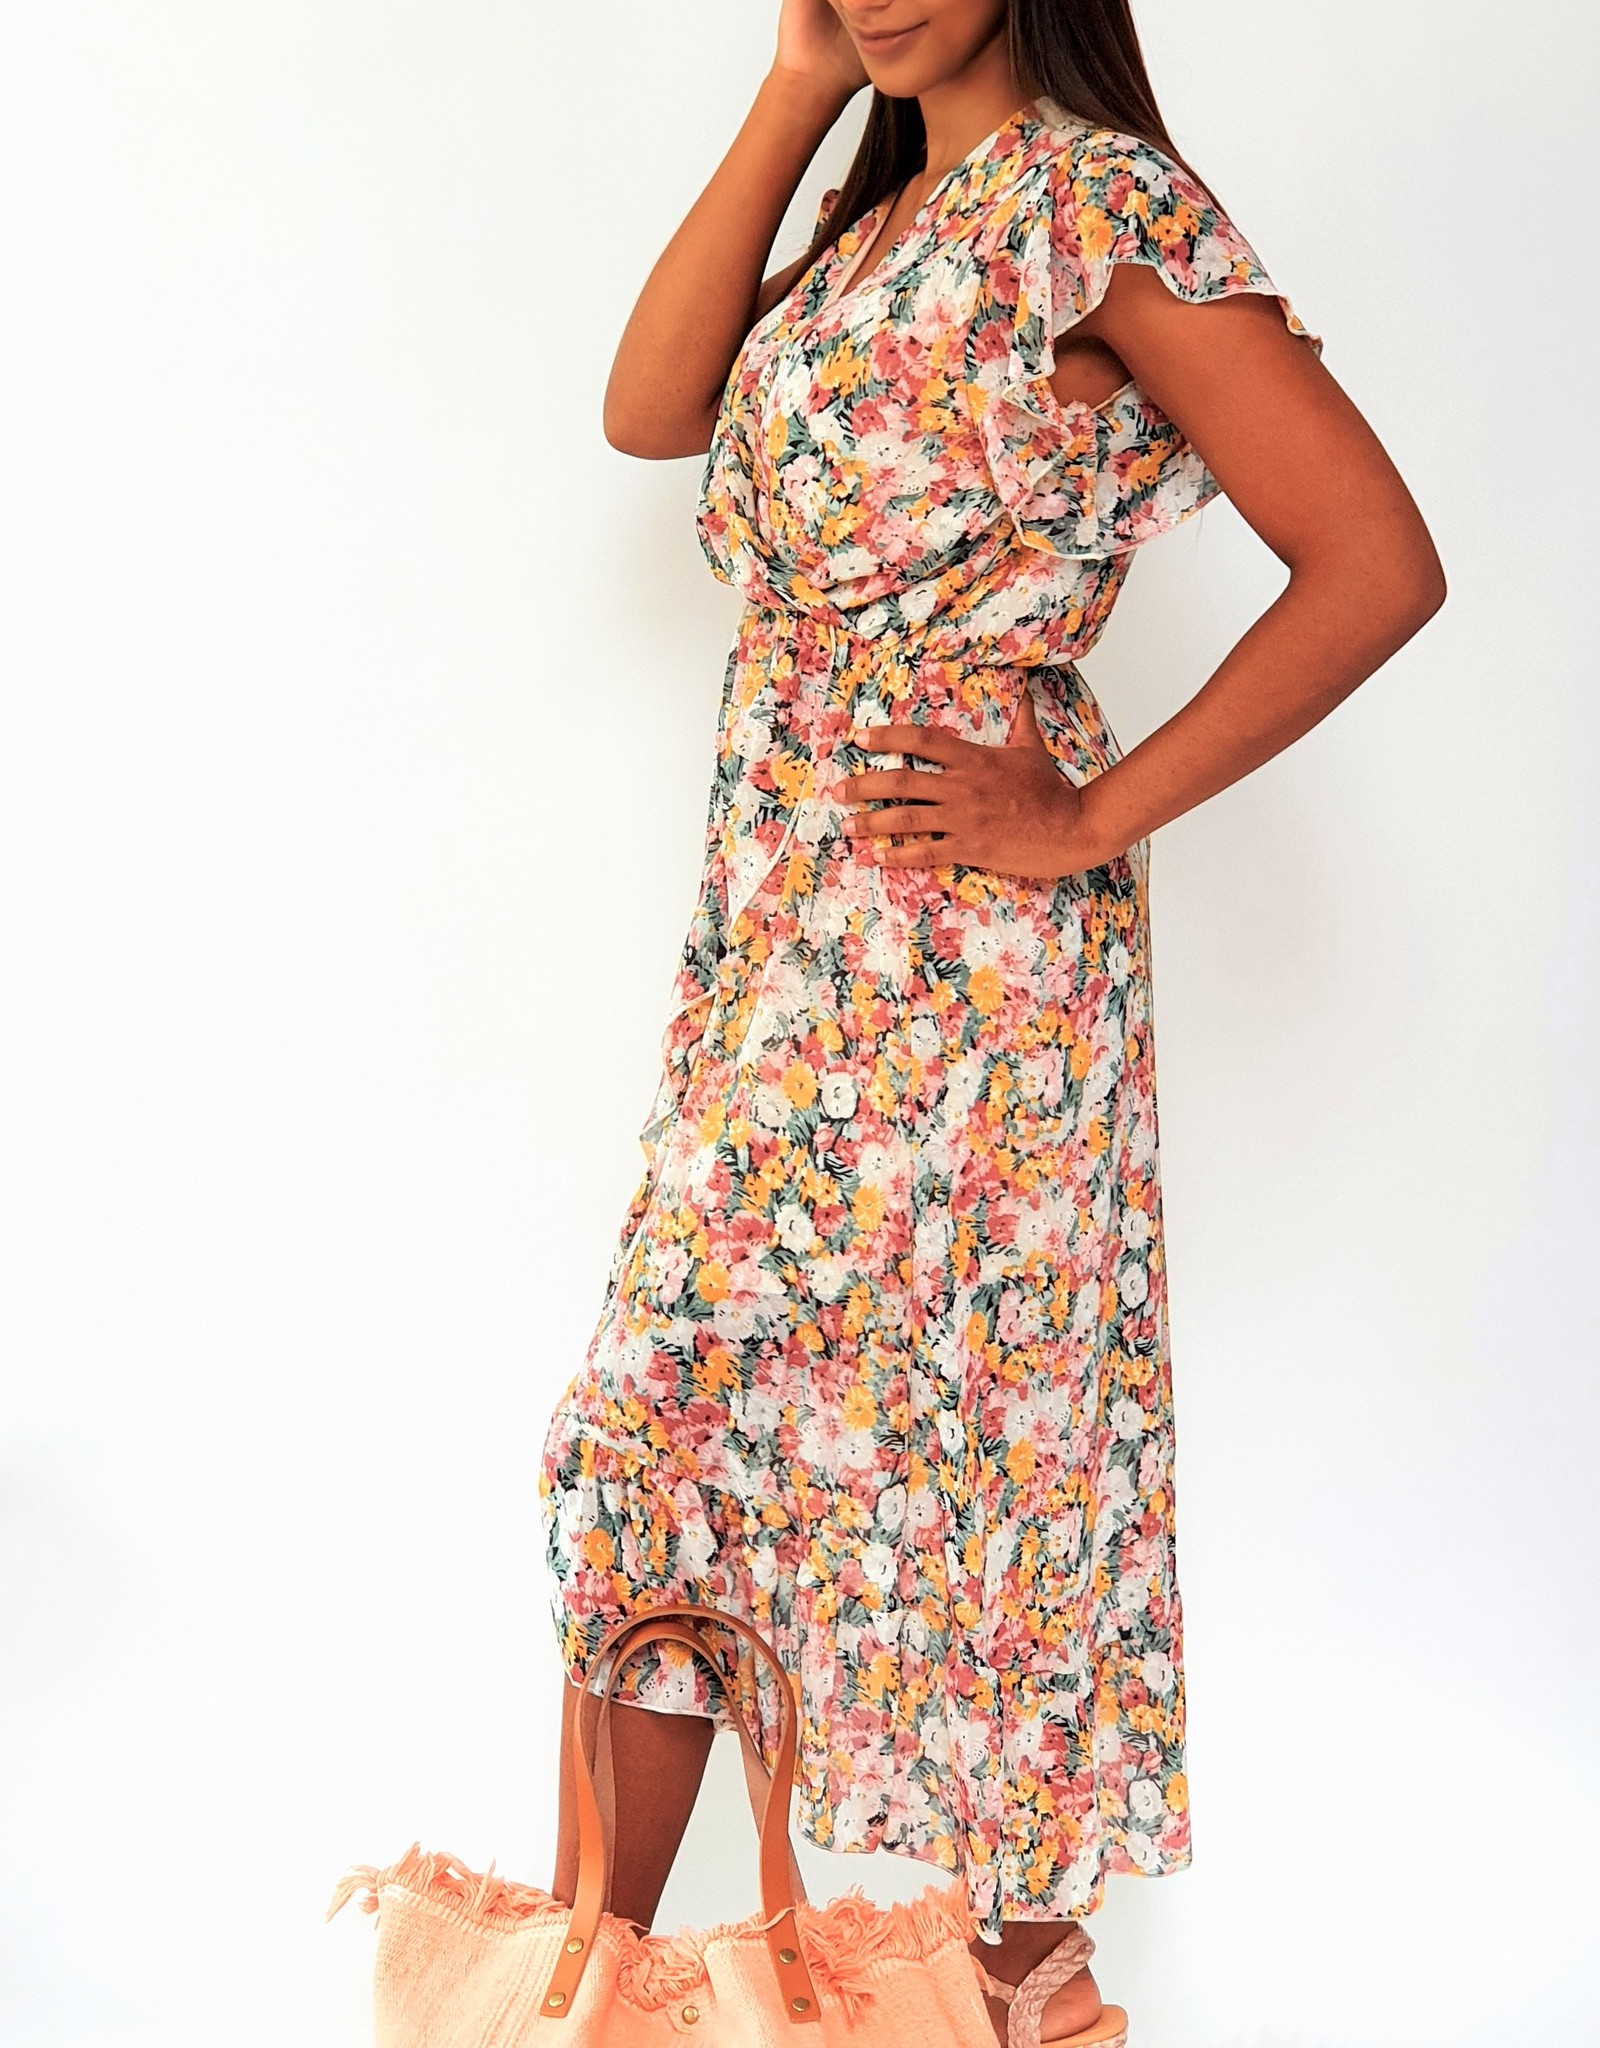 Thé perfect flower dress